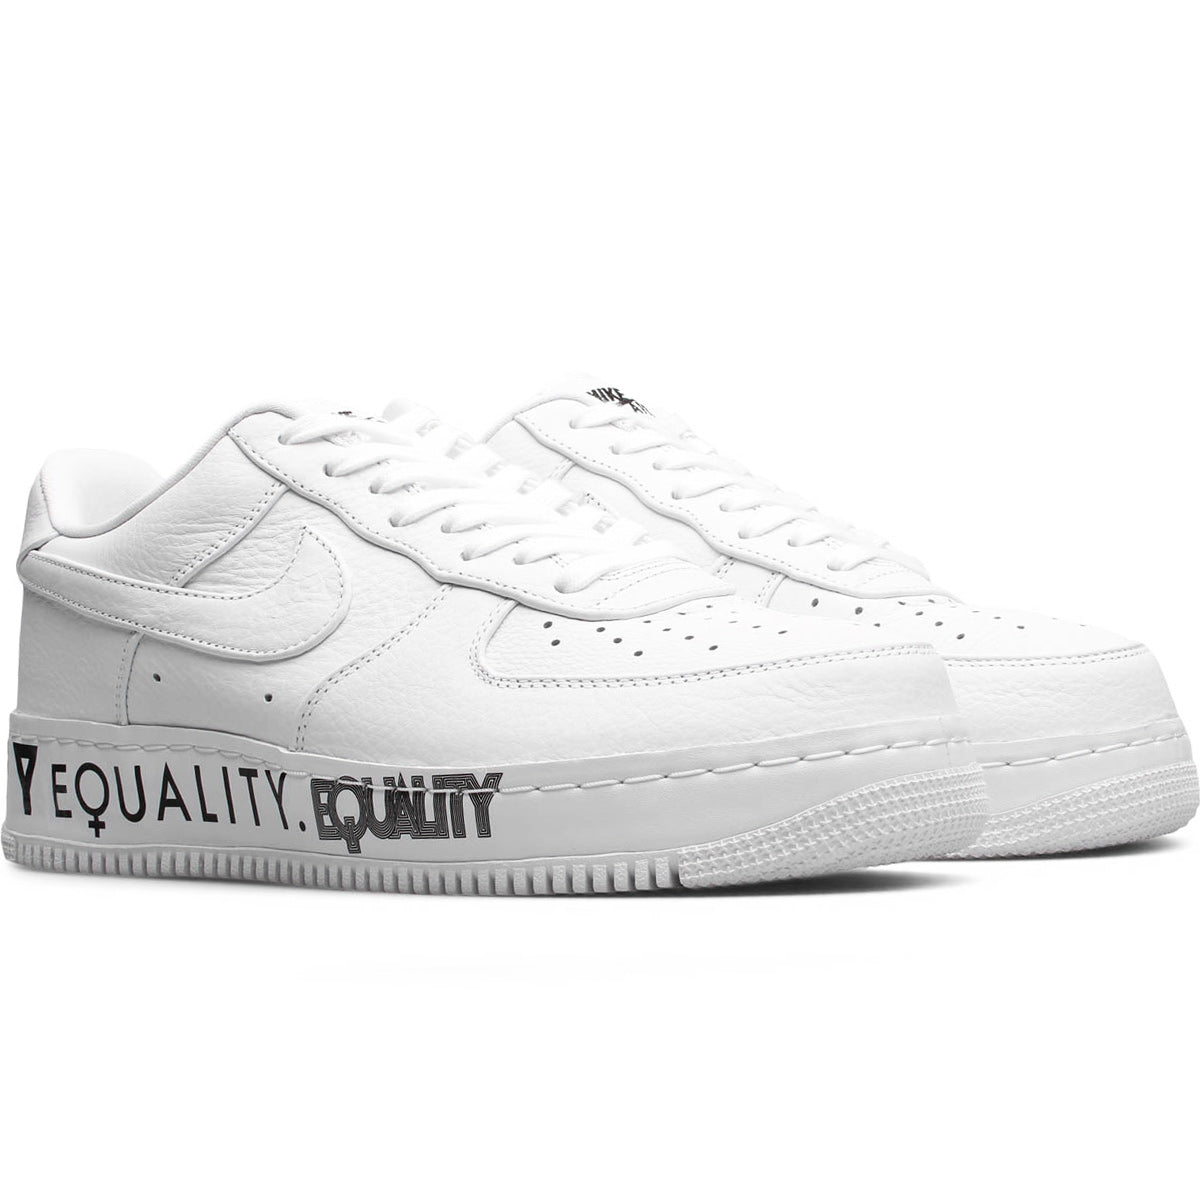 huge selection of 8405c c3a95 6/19/19: Nike Air Force 1 Low CMFT Equality – Bodega